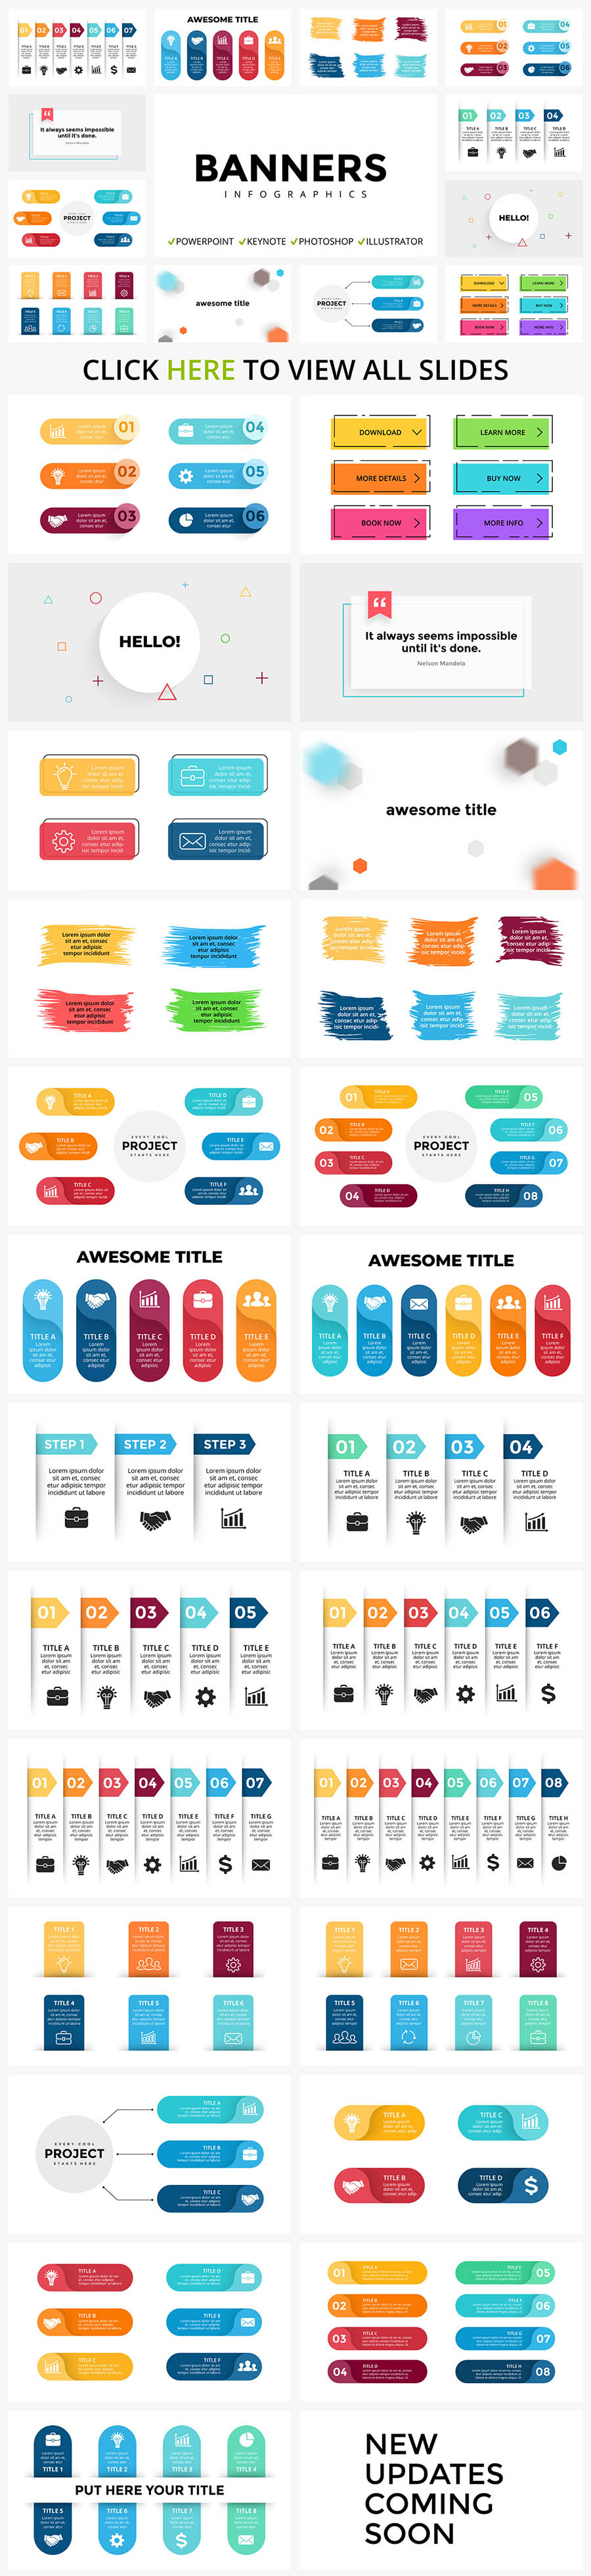 Cool Infographics in 2020. Best Infographics Bundle: 1500 items - $29 - 11 BANNERS